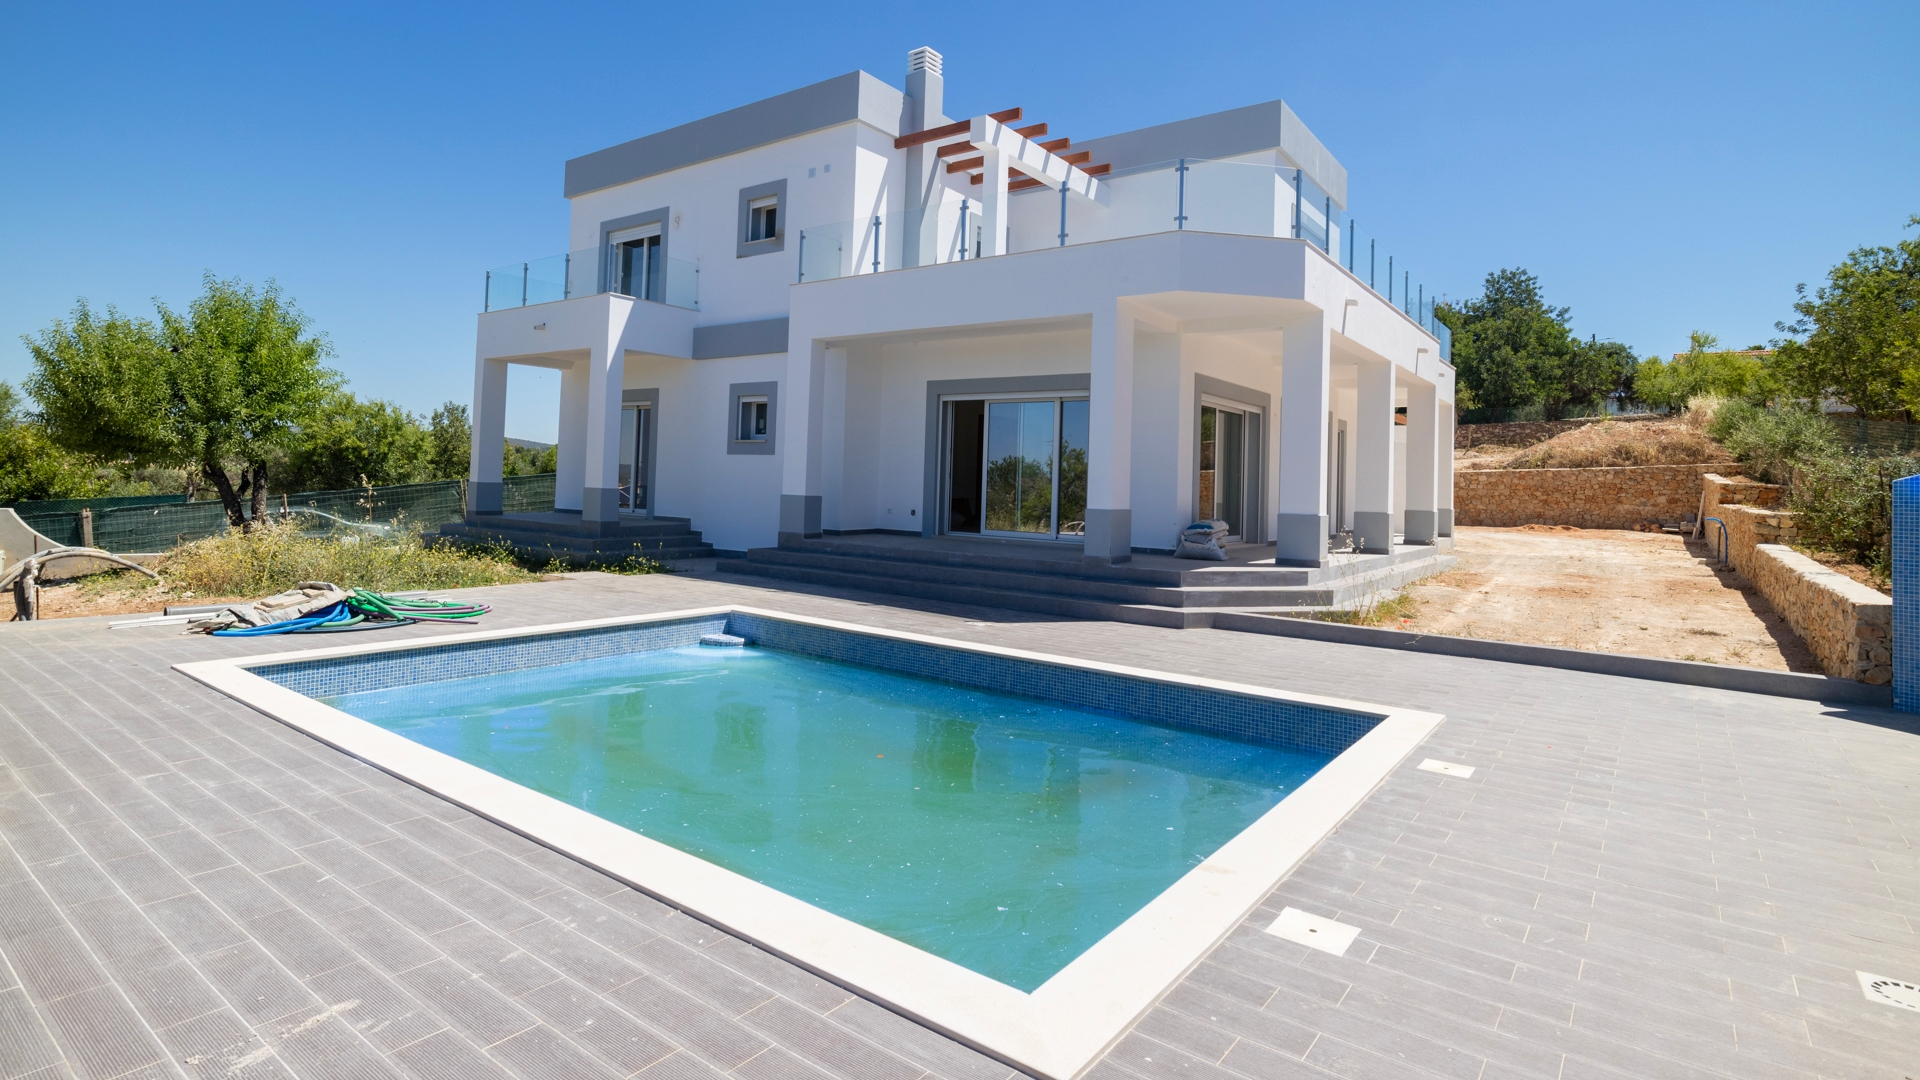 Contemporary 4 Bedroom Villa with Pool near Paderne, Albufeira | VM1459 This newly built modern home is located within walking distance to the village of Paderne with all amenities catered to and is set in a peaceful environment with panoramic countryside views.